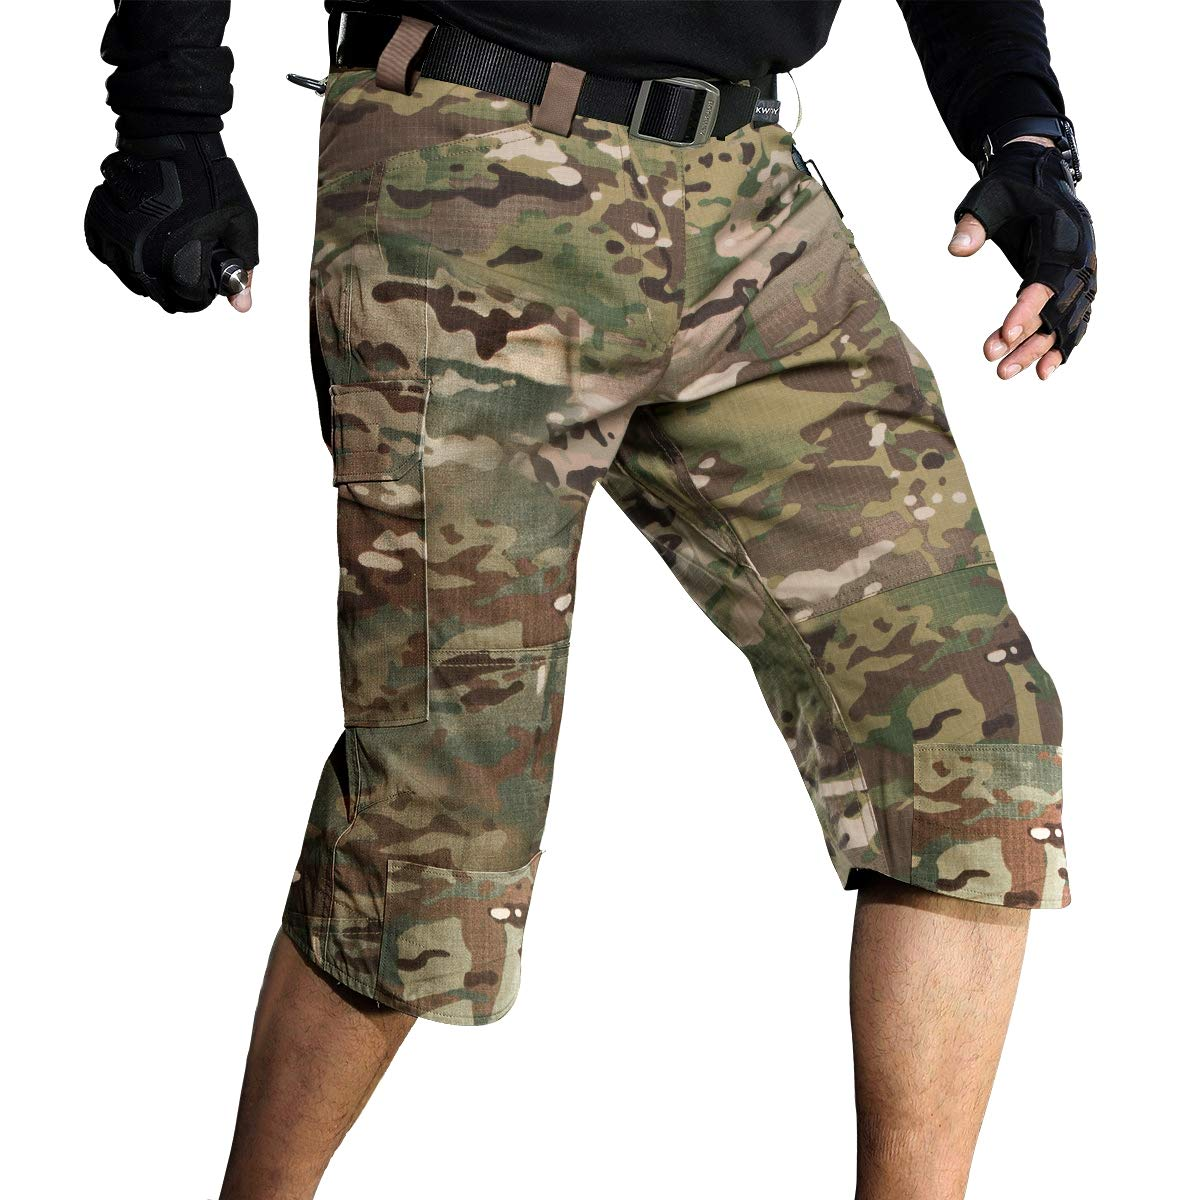 FREE SOLDIER Men's Capri Shorts Pants Casual 3/4 Water Resistant Multi Pockets Tactical Cargo Short (CP Camouflage W32)